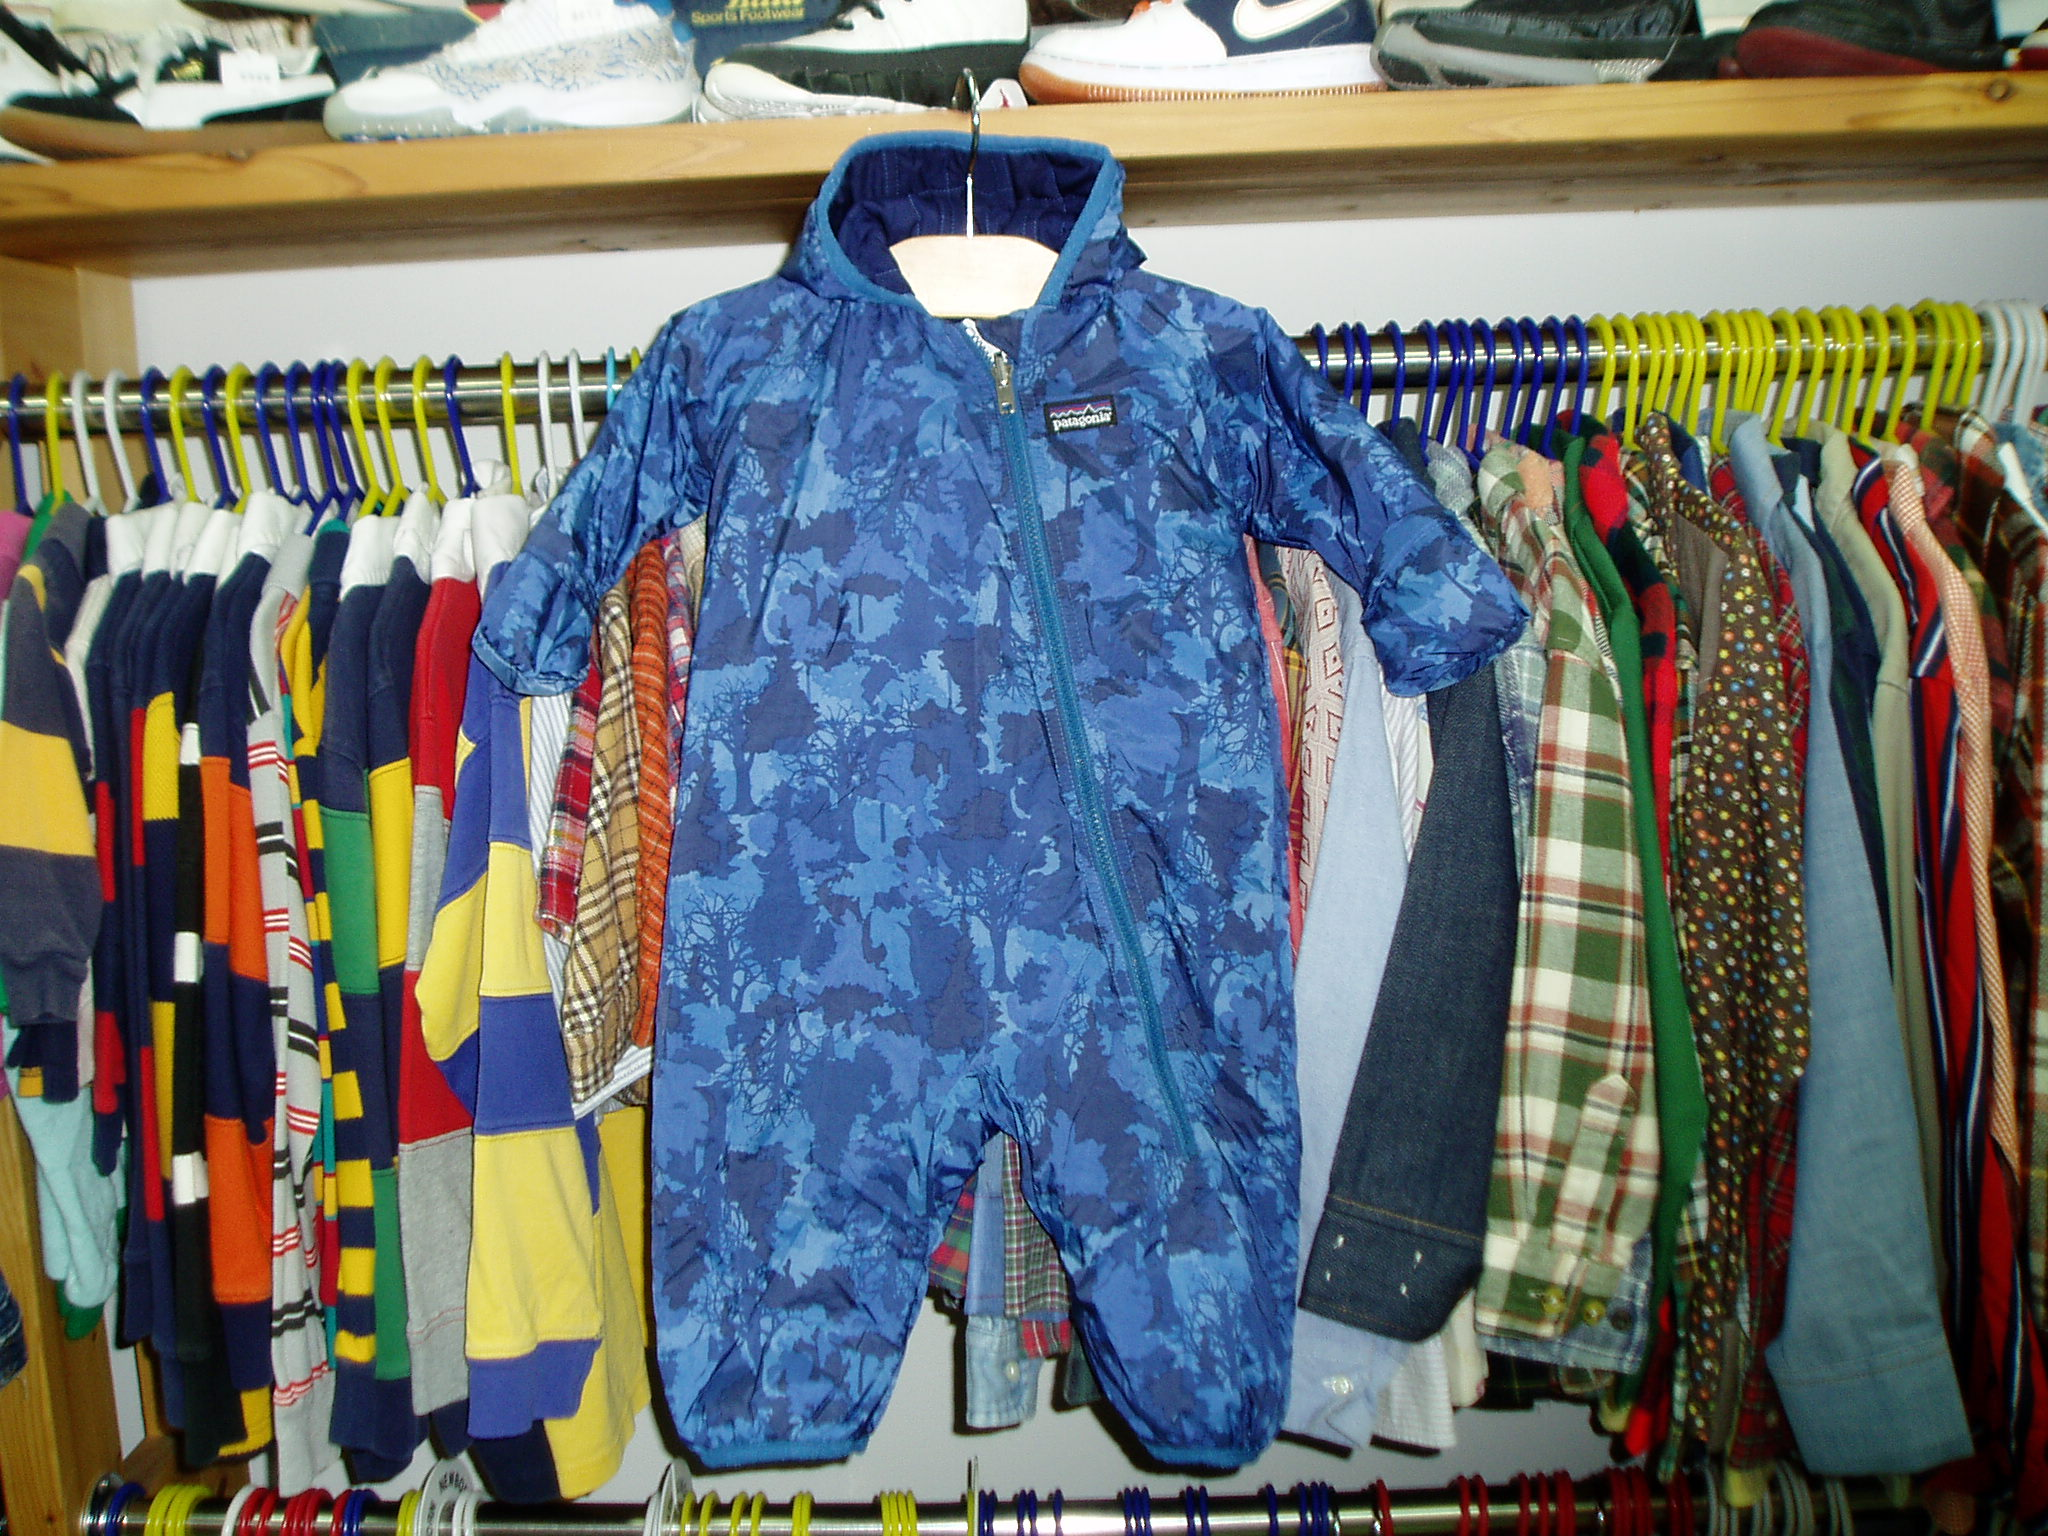 patagonia senior personals Colo springs for sale - craigslist cl colo springs for sale post account 0 favorites 0 hidden cl colo springs for sale « » press to search.